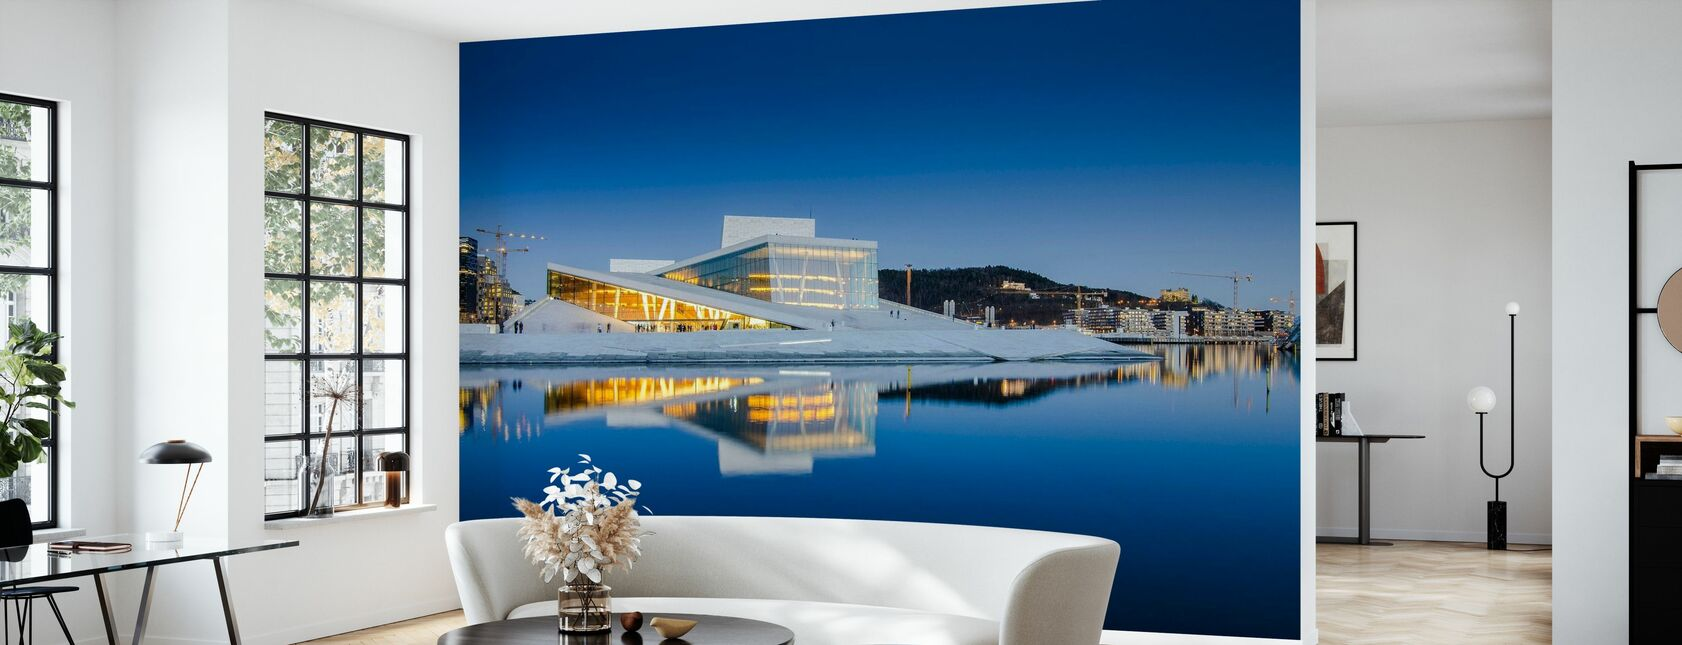 Oslo Opera House by Night - Wallpaper - Living Room